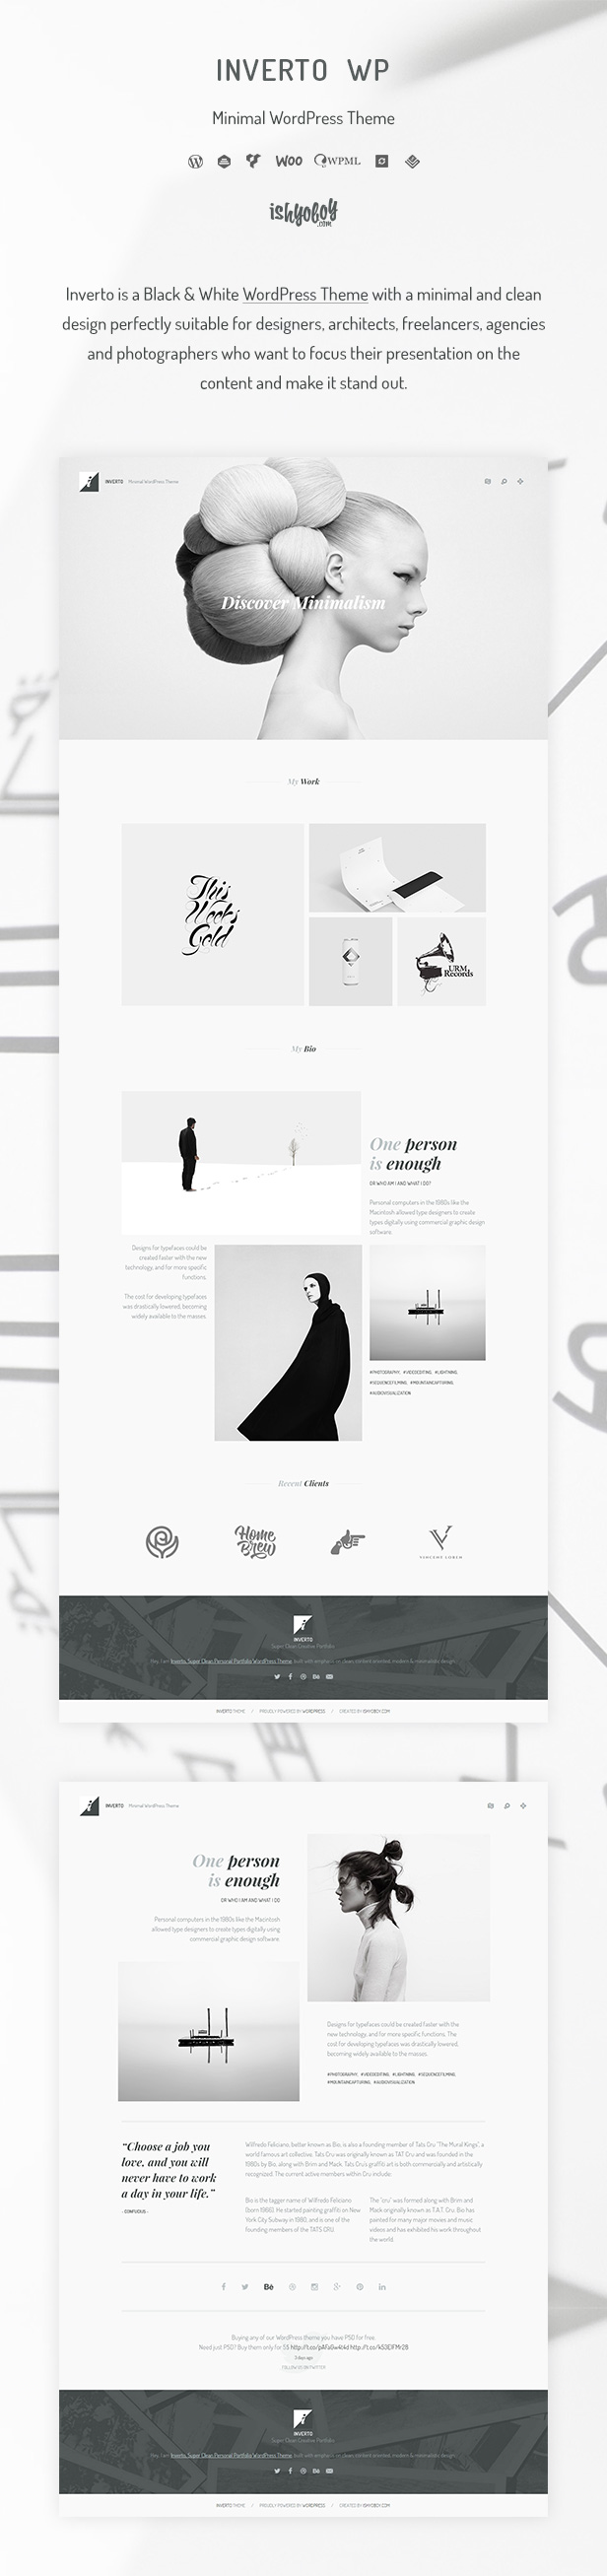 Inverto WP - Minimal WordPress Theme